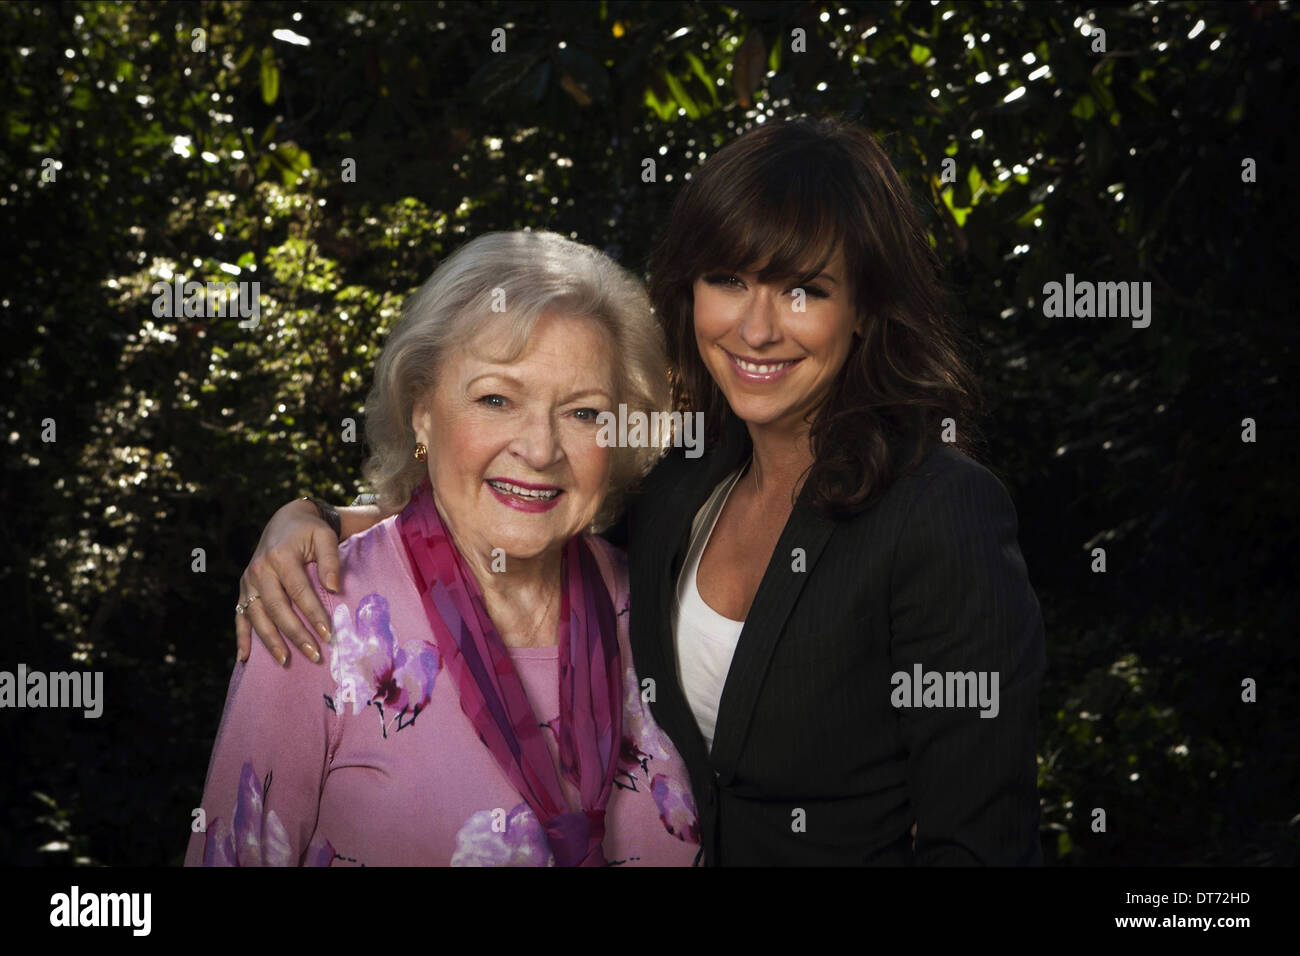 BETTY WHITE & JENNIFER LOVE HEWITT THE LOST VALENTINE (2011) - Stock Image